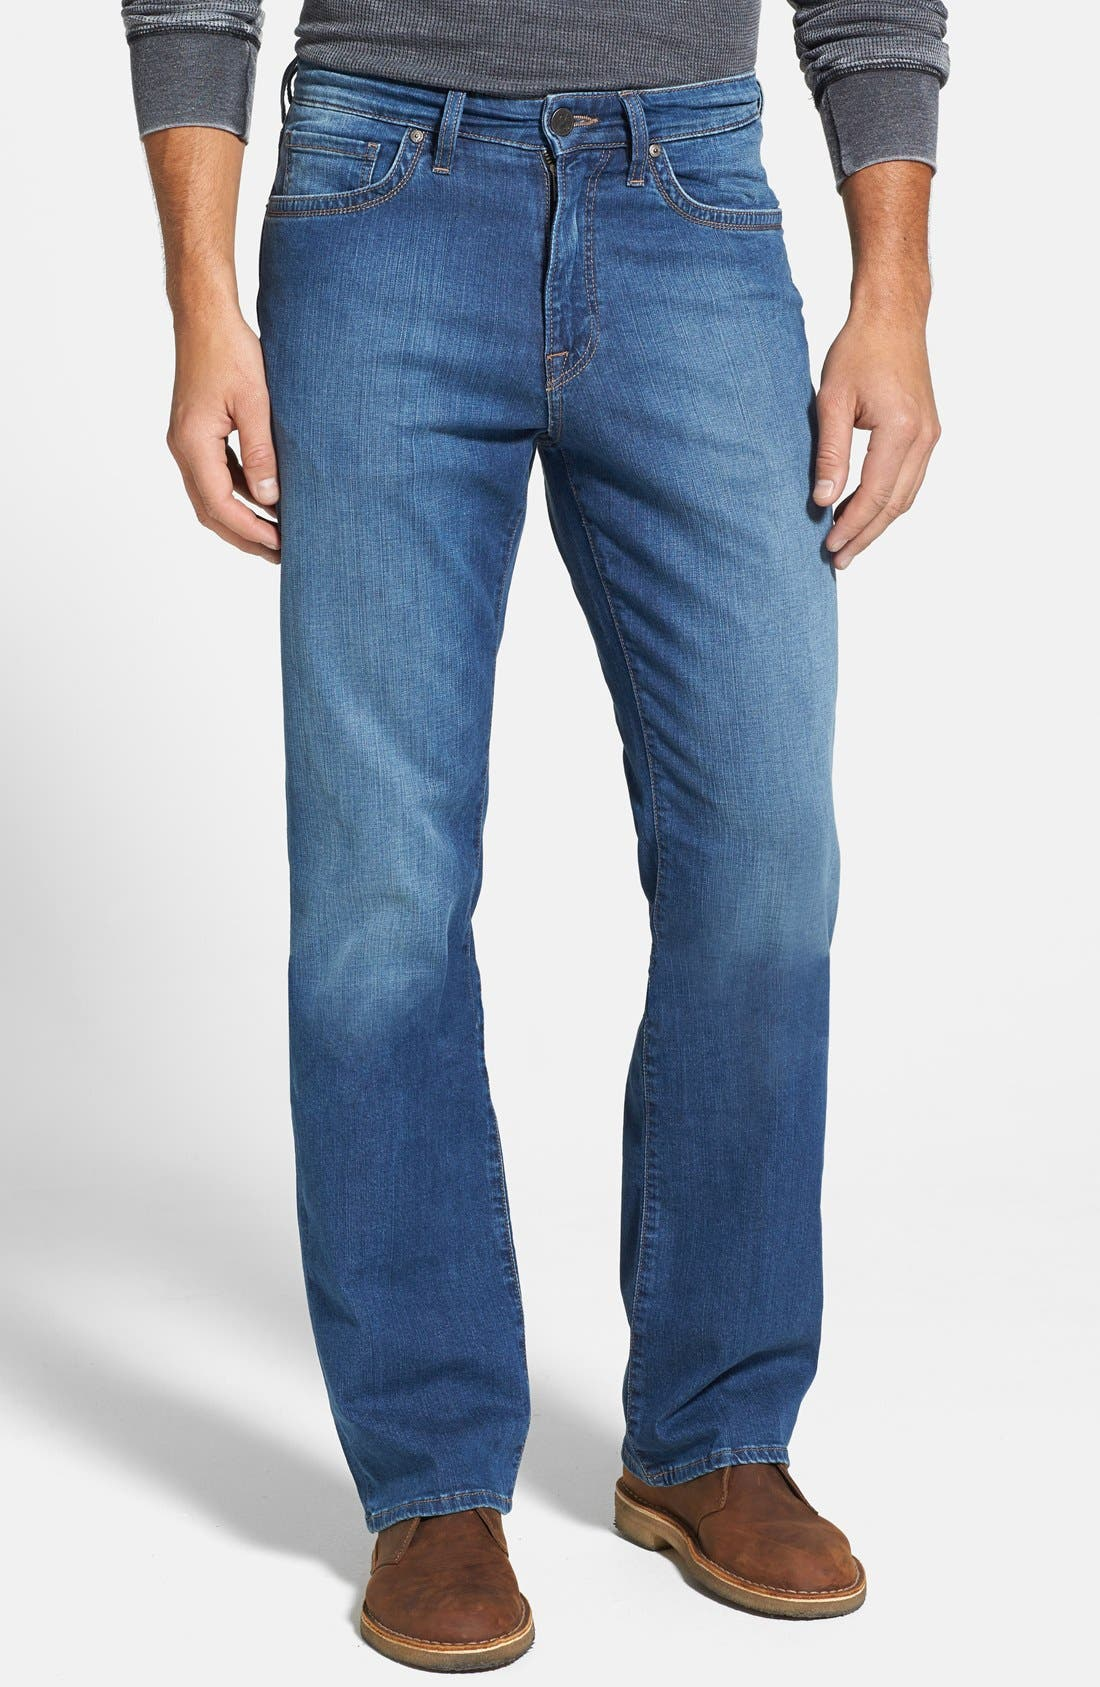 'Charisma' Classic Relaxed Fit Jeans,                             Main thumbnail 1, color,                             MID CASHMERE